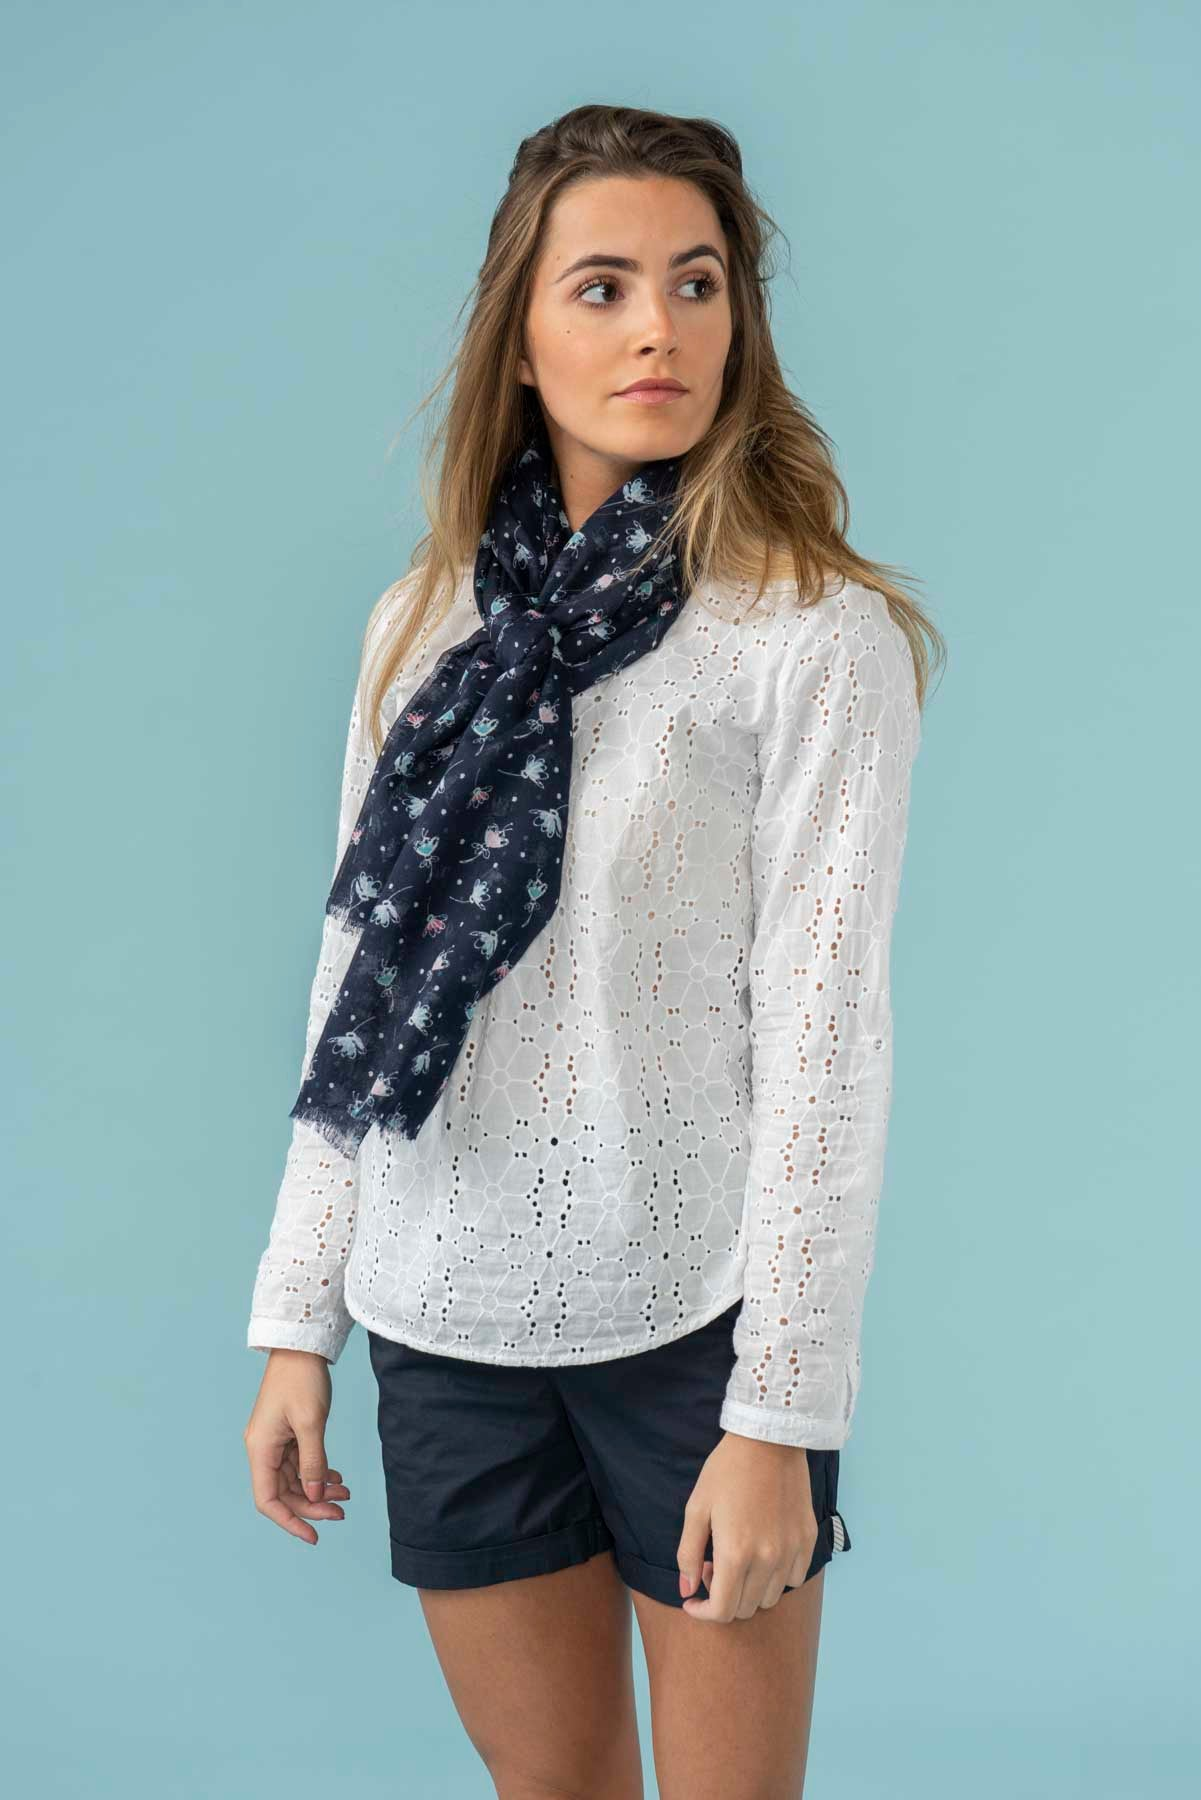 Women's Accessories - Navy patterned scarf